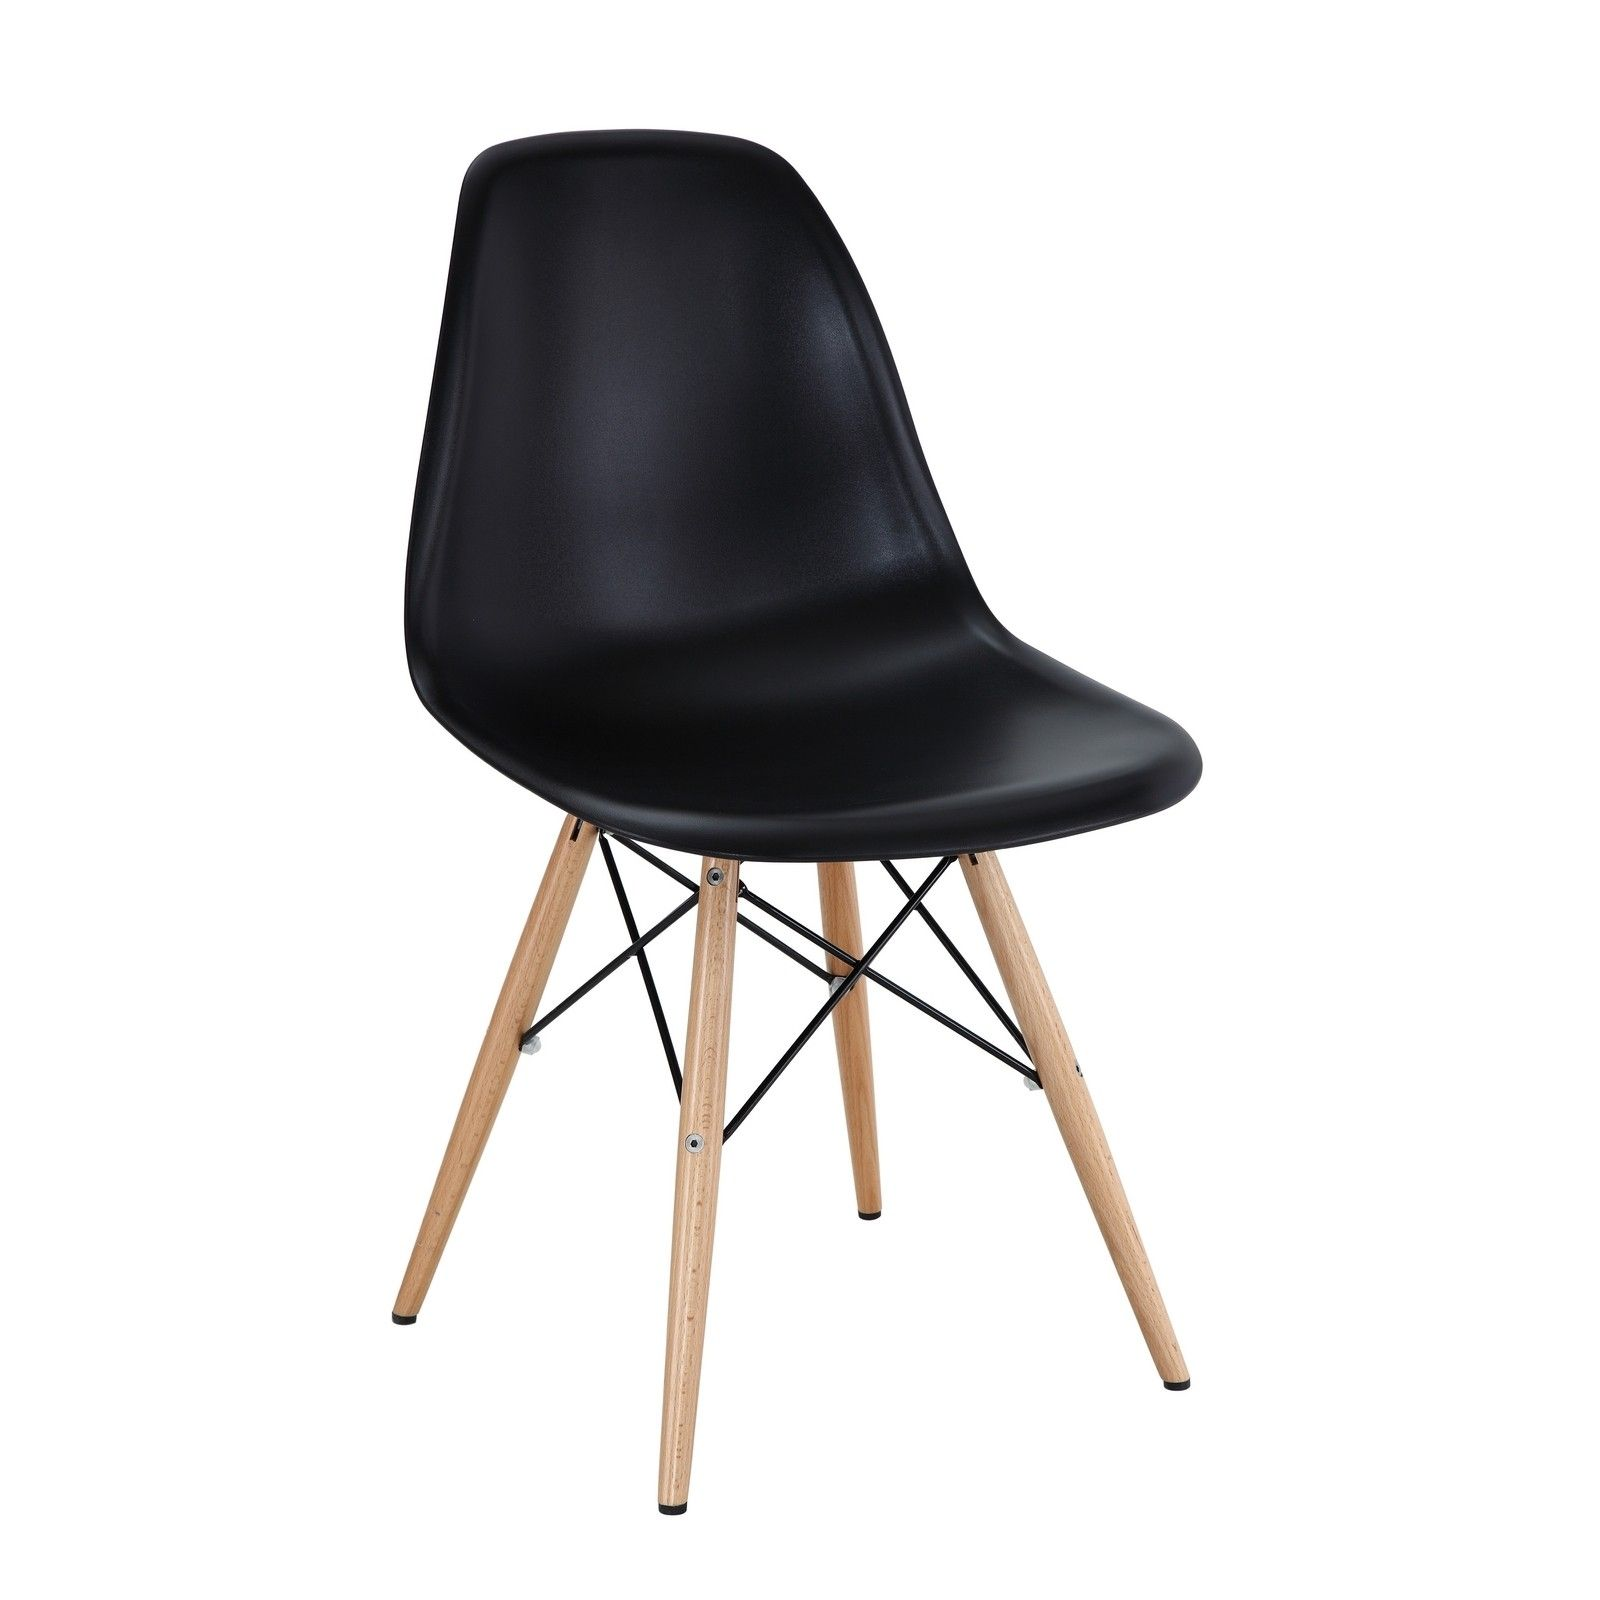 Eames Style Dining Chair With Wood Legs Multiple Colors